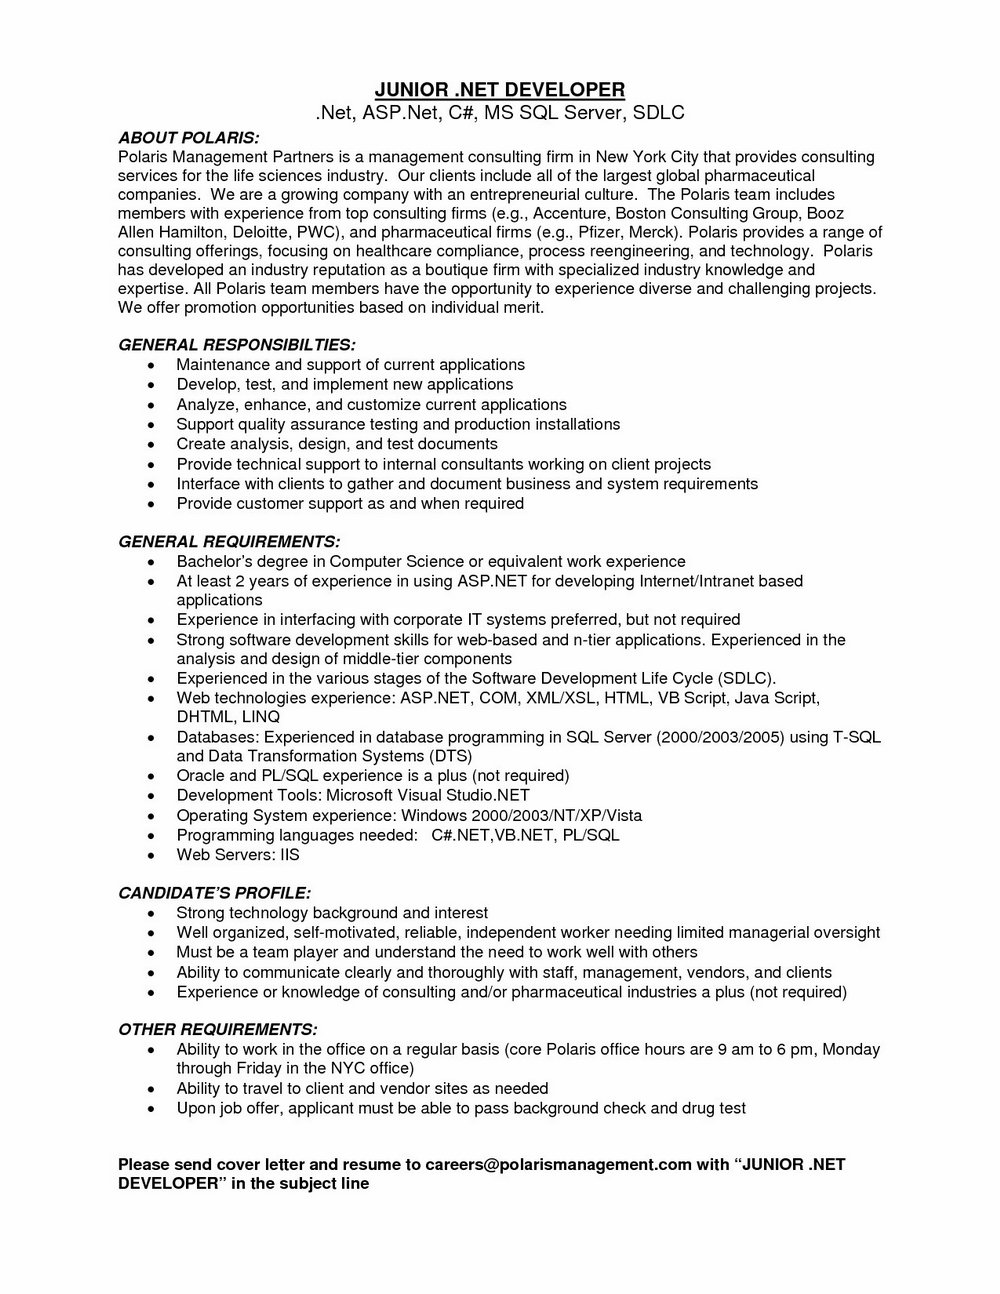 Sample Resume For Dot Net Developer Experience 8 Years